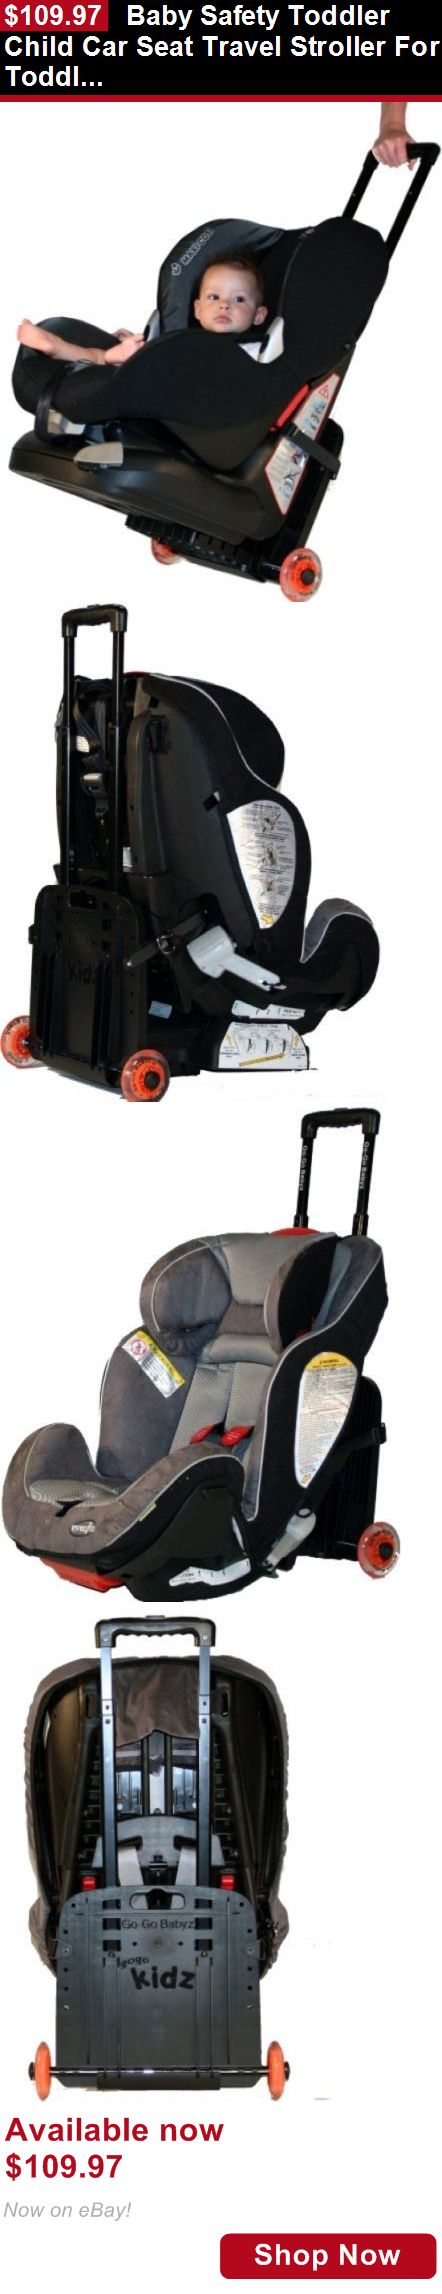 Car Seat Accessories: Baby Safety Toddler Child Car Seat Travel Stroller For Toddler Car Seats BUY IT NOW ONLY: $109.97